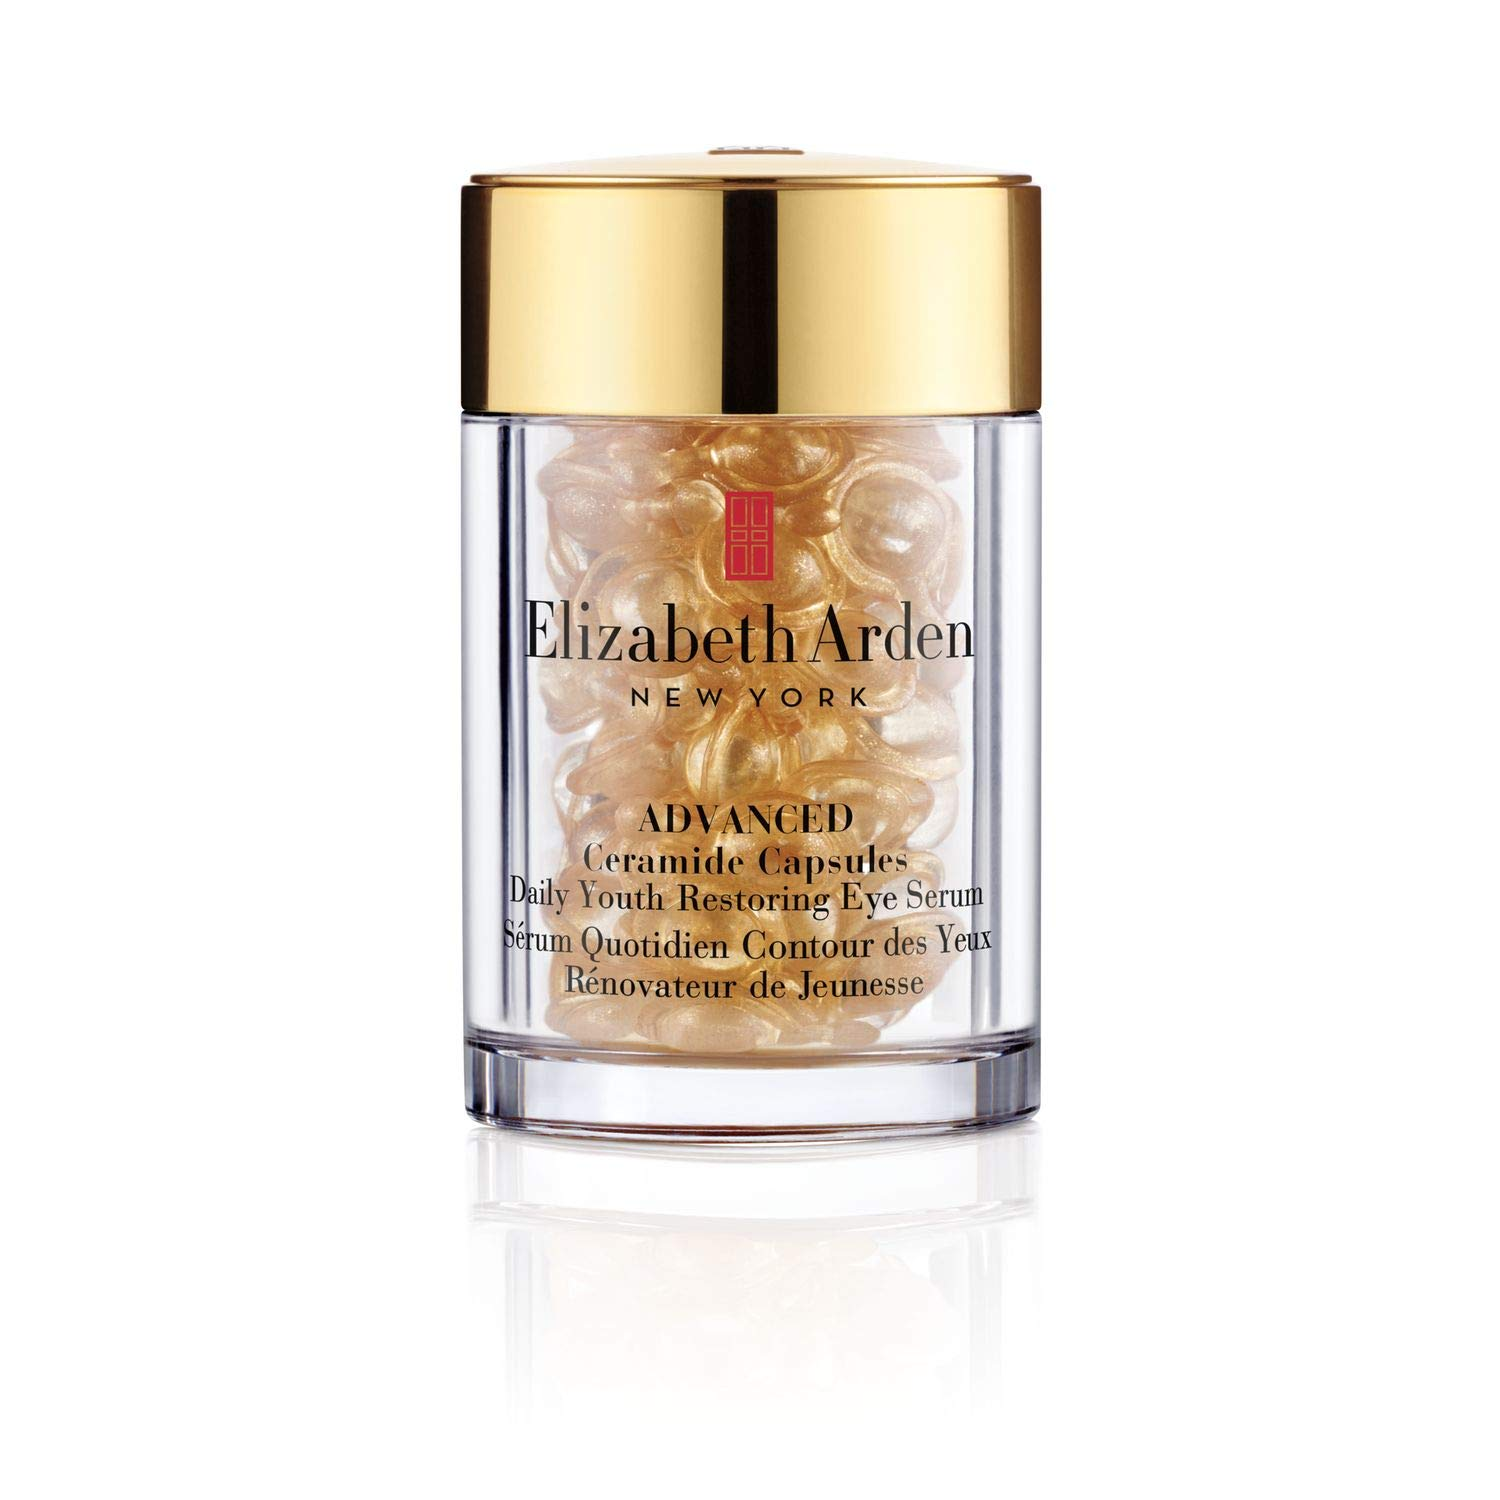 Elizabeth Arden Advanced Ceramide Capsules Daily Youth Restoring Eye Serum by Elizabeth Arden